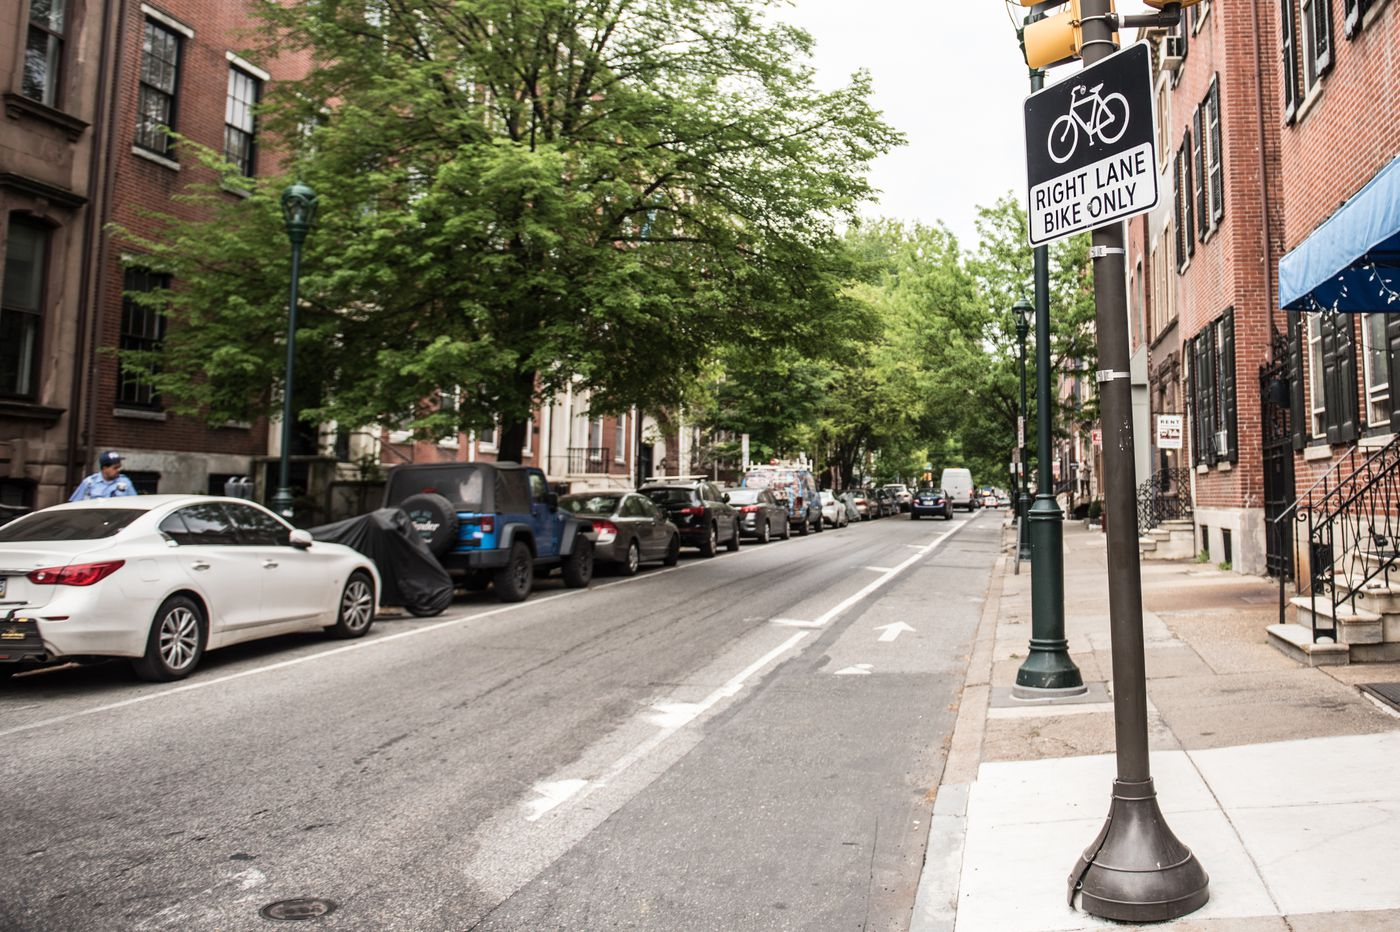 Safest bicycle lanes are those with physical barriers